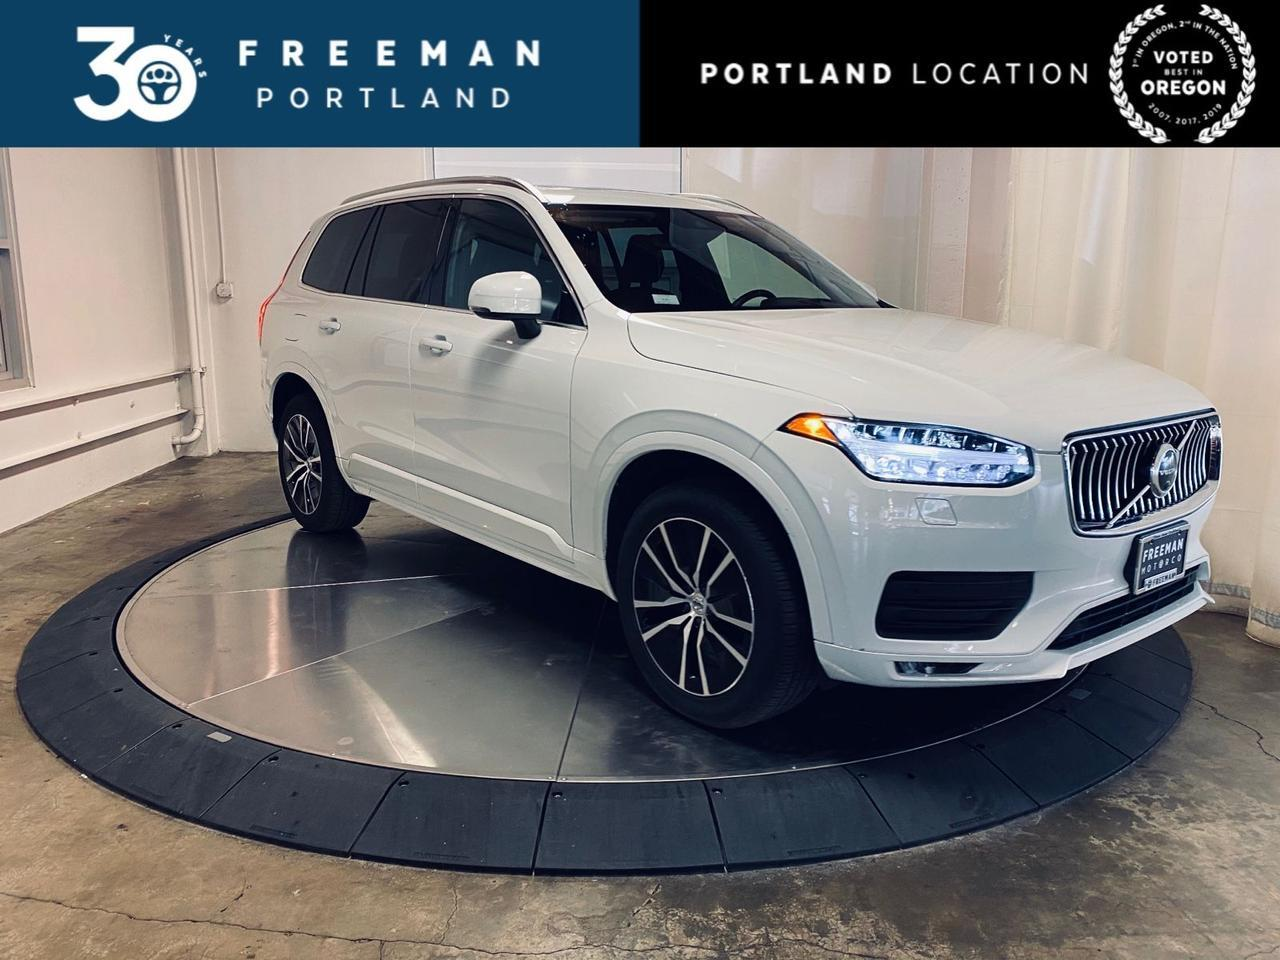 2020 Volvo XC90 T6 AWD Momentum Adaptive Cruise 360 Camera